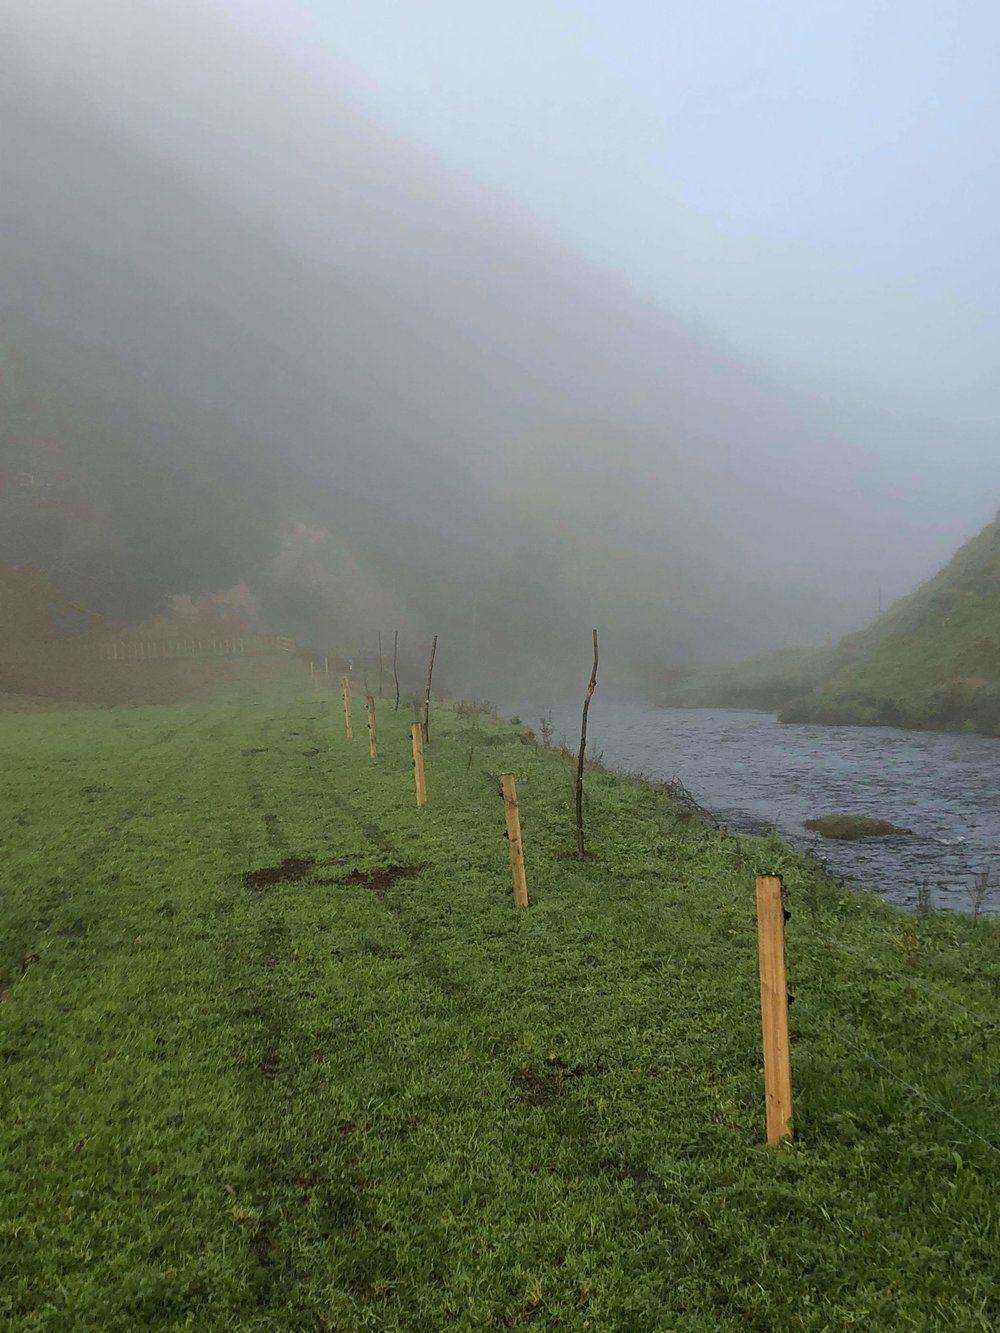 Image shows willow pole planting for erosion management by Waikato Regional Council